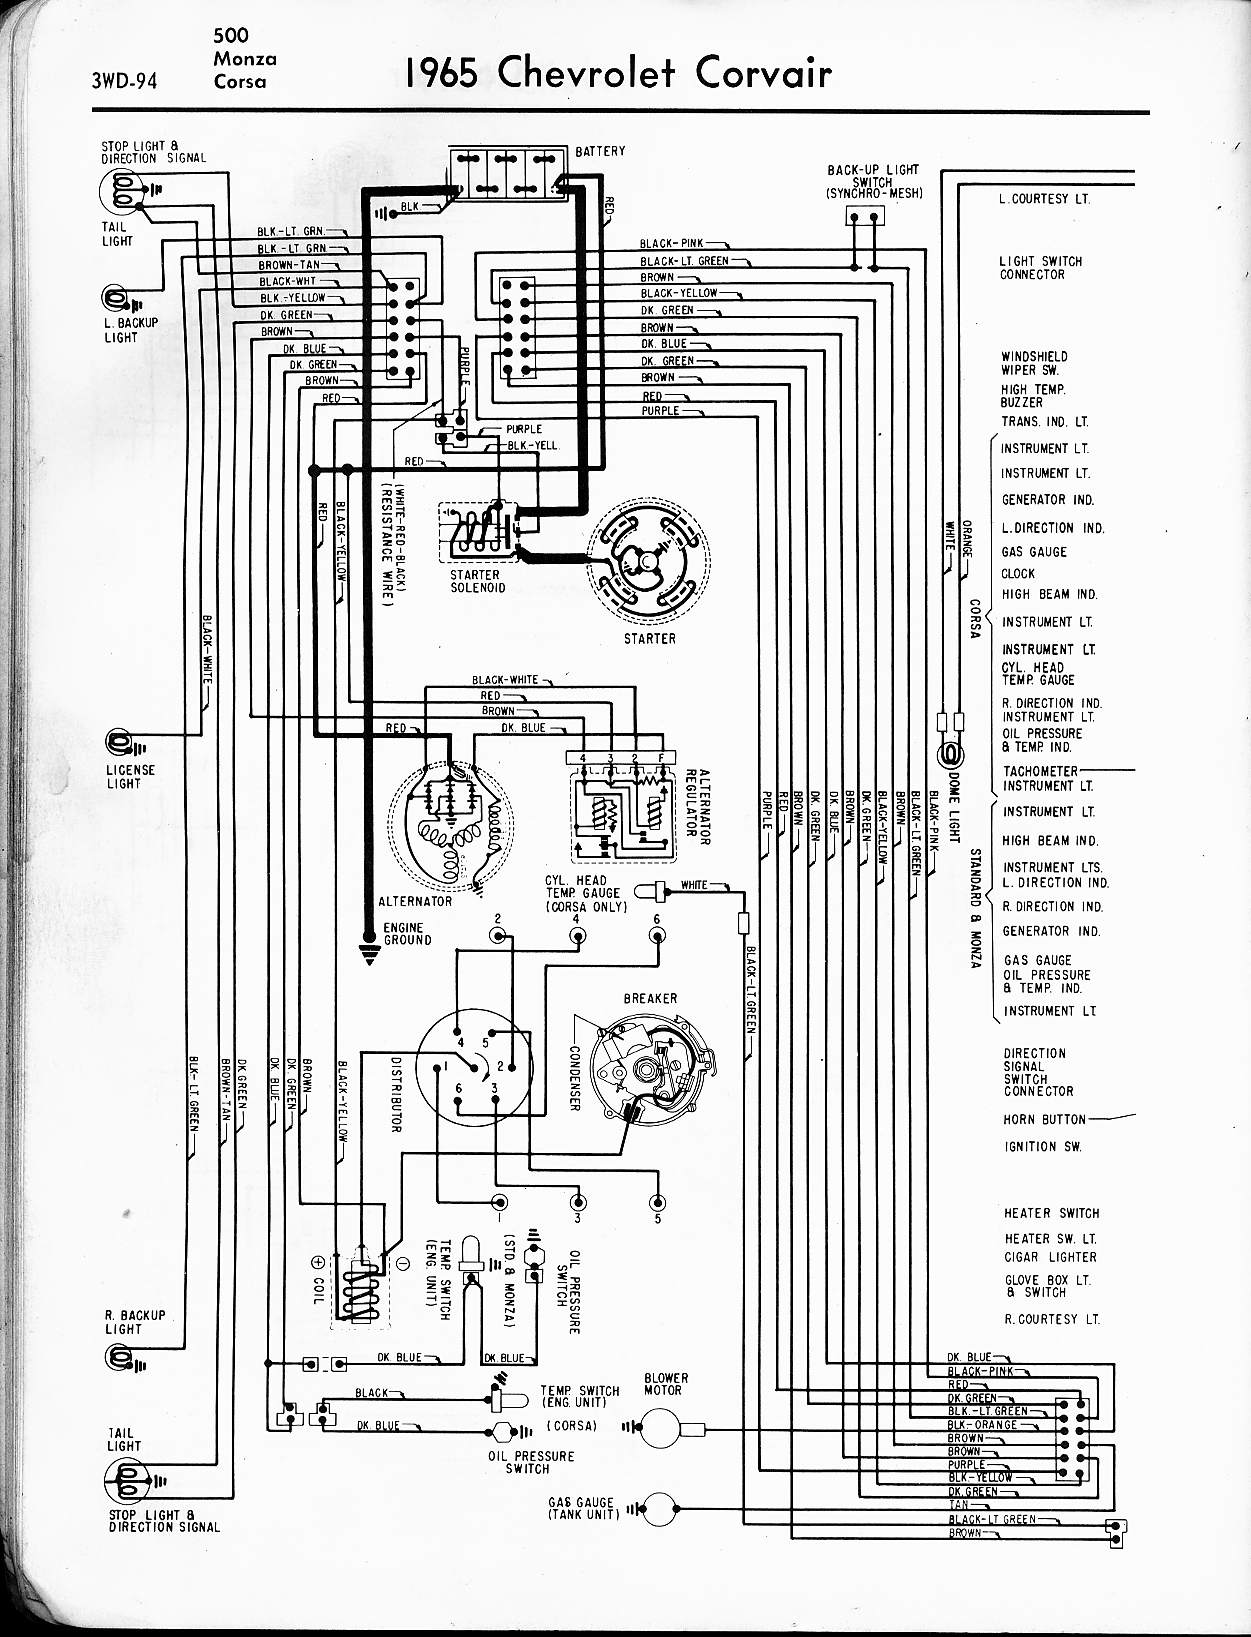 MWireChev64_3WD 094 57 65 chevy wiring diagrams 1963 corvair wiring diagram at gsmx.co